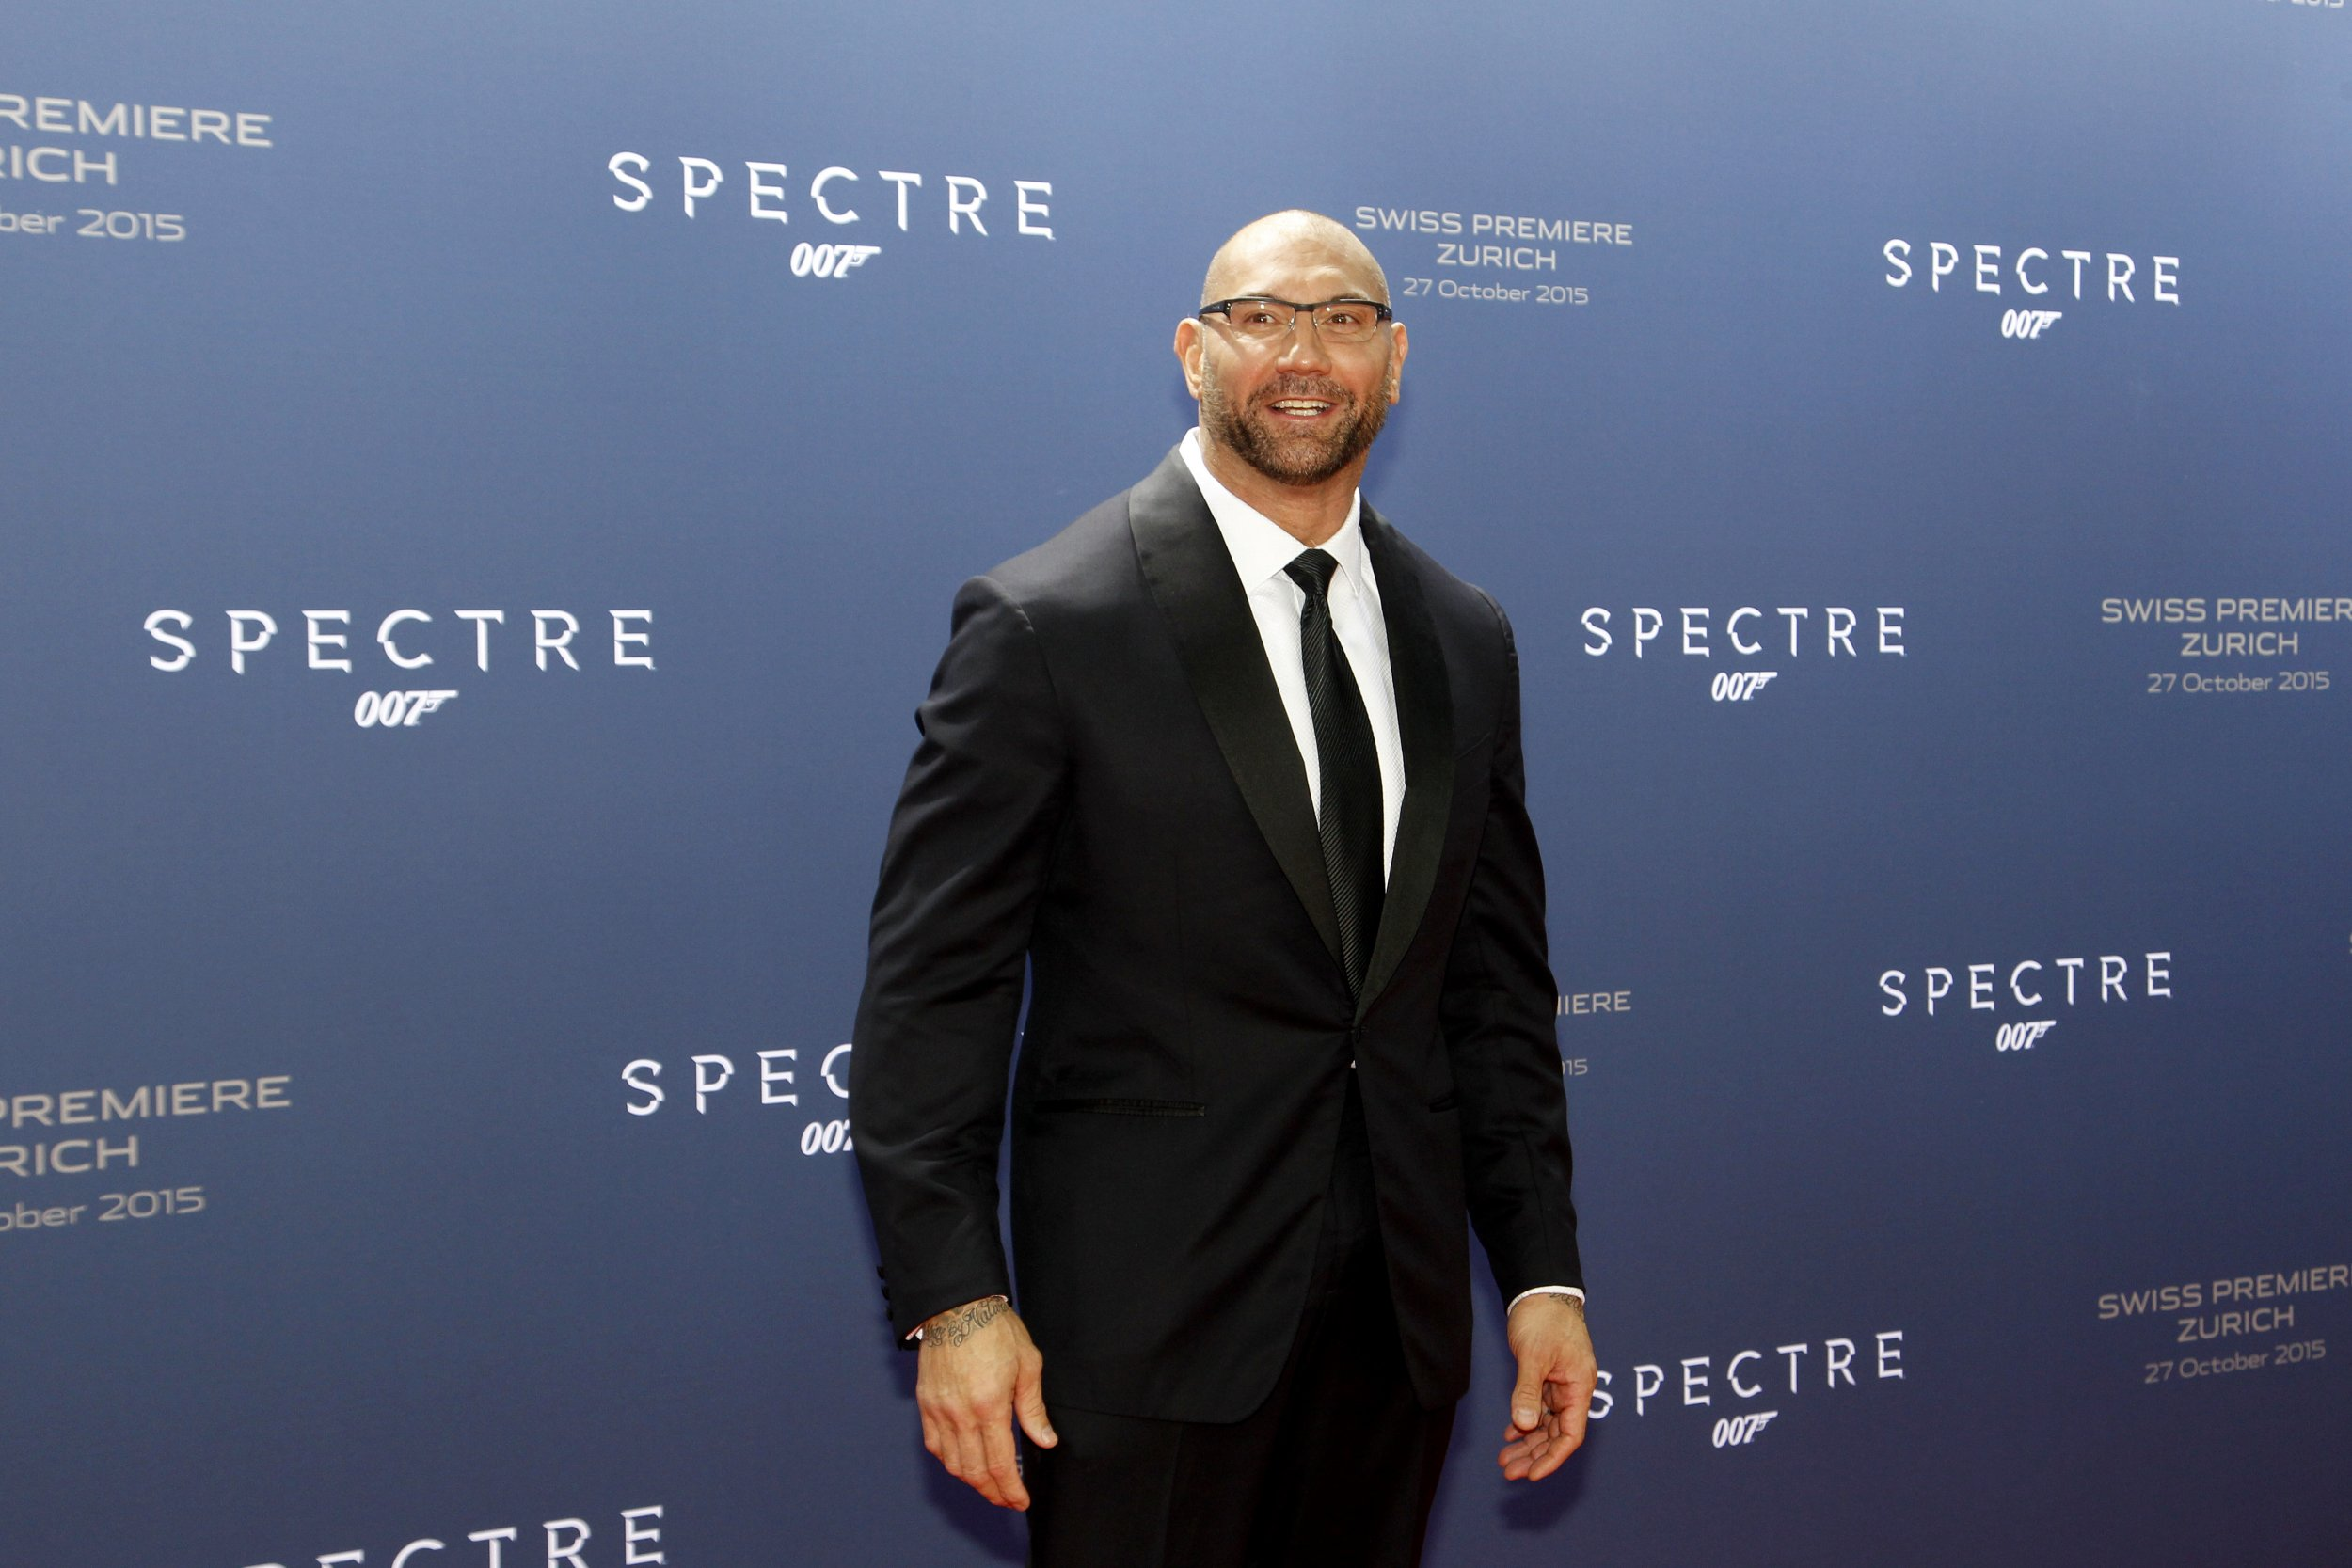 Dave Bautista at SPECTRE premiere